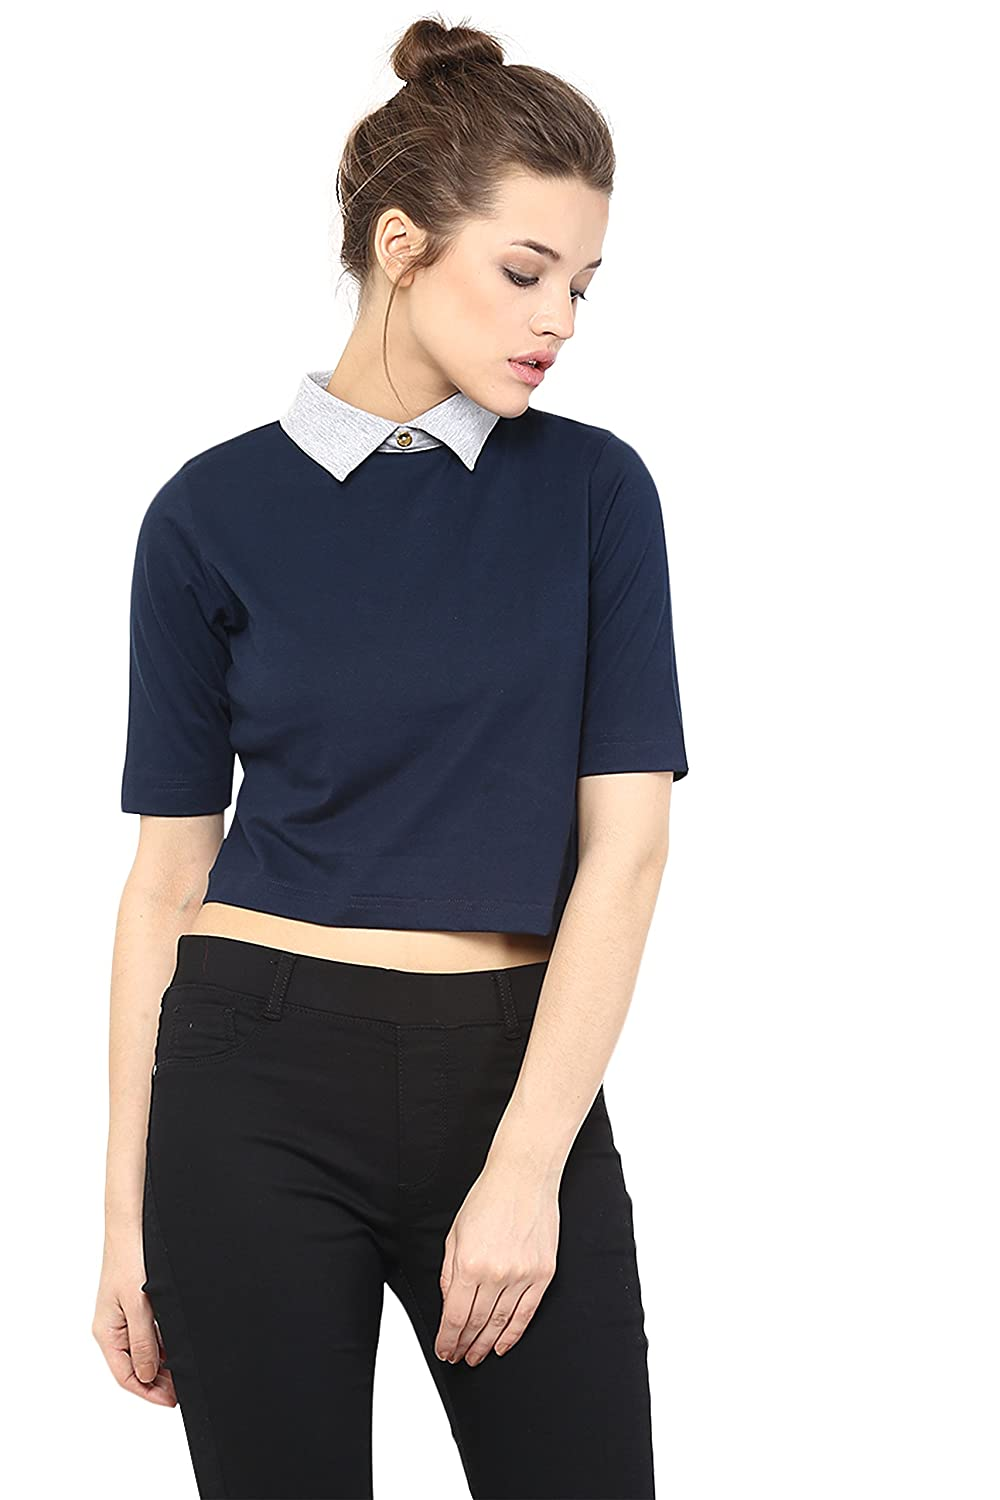 Miss Chase Women's Casual and Comfortable Half Sleeve Solid Collared Boxy Fit Crop Top Women's Tops